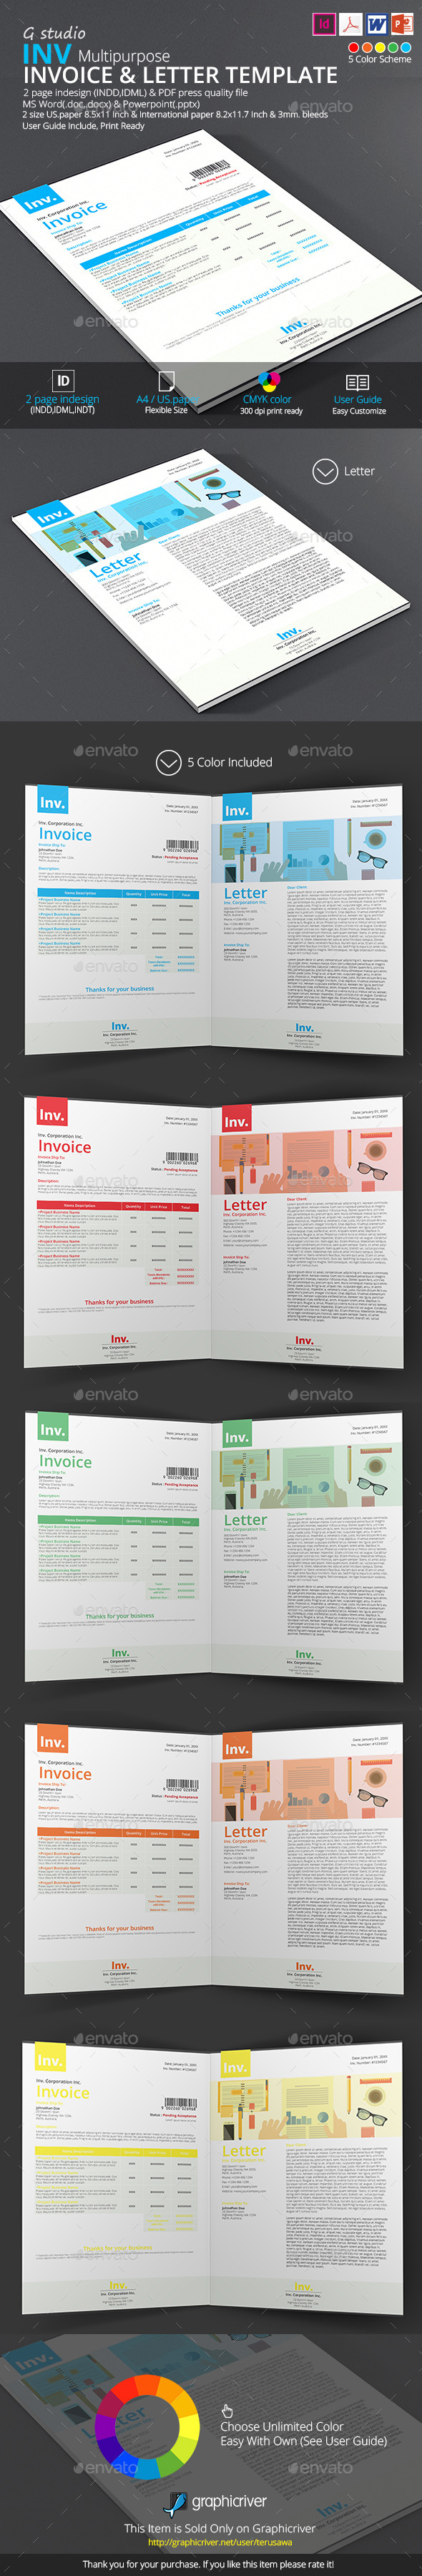 Inv Invoice And Letter Template - Proposals & Invoices Stationery